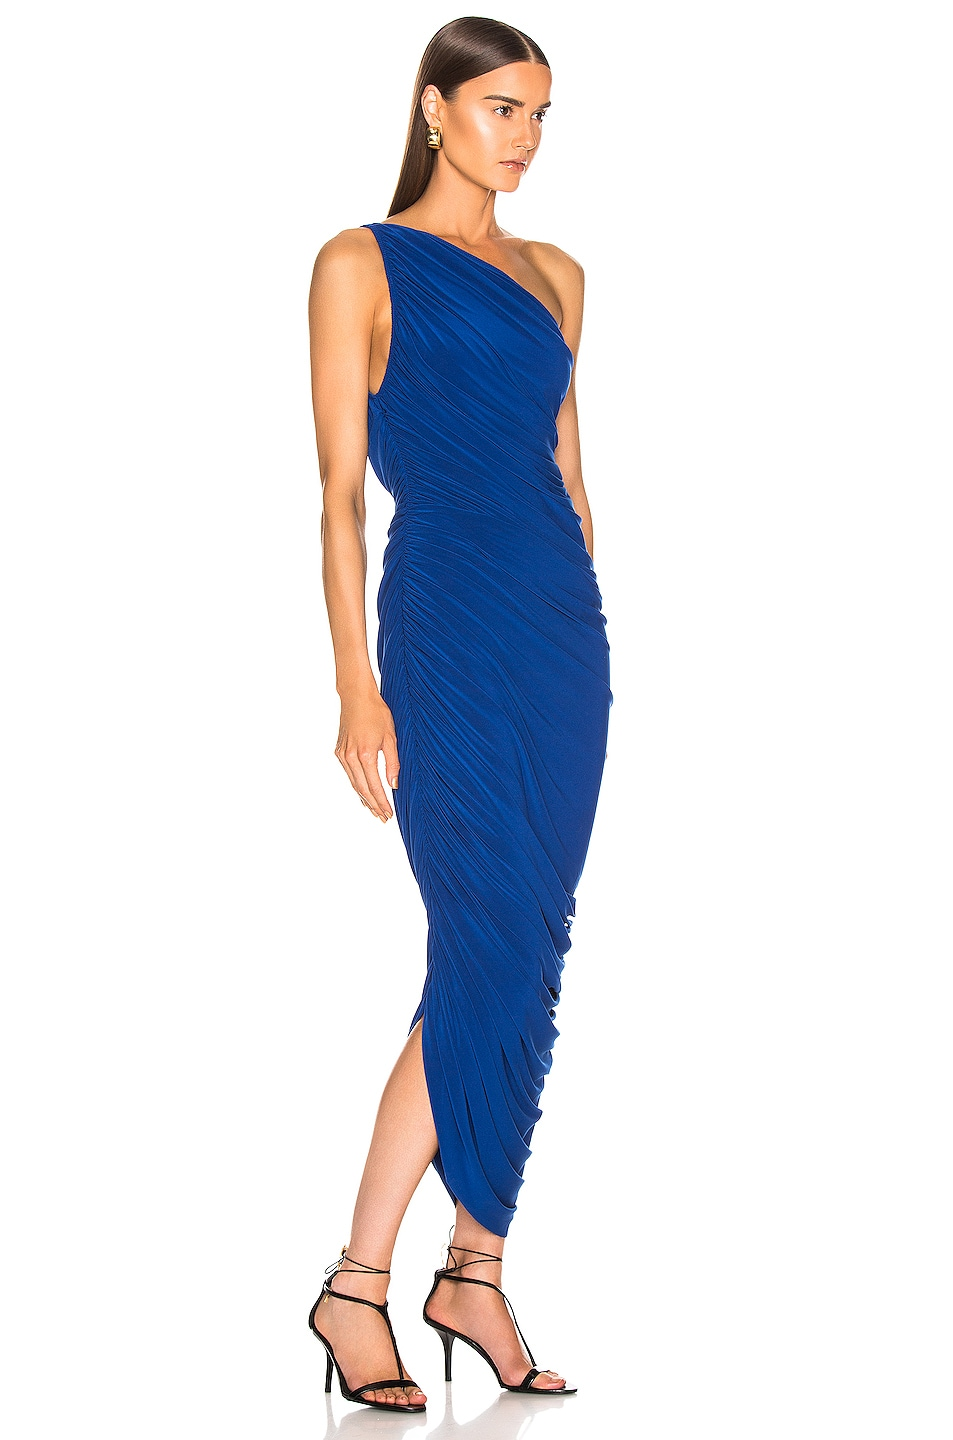 Image 2 of Norma Kamali Diana Dress in Berry Blue